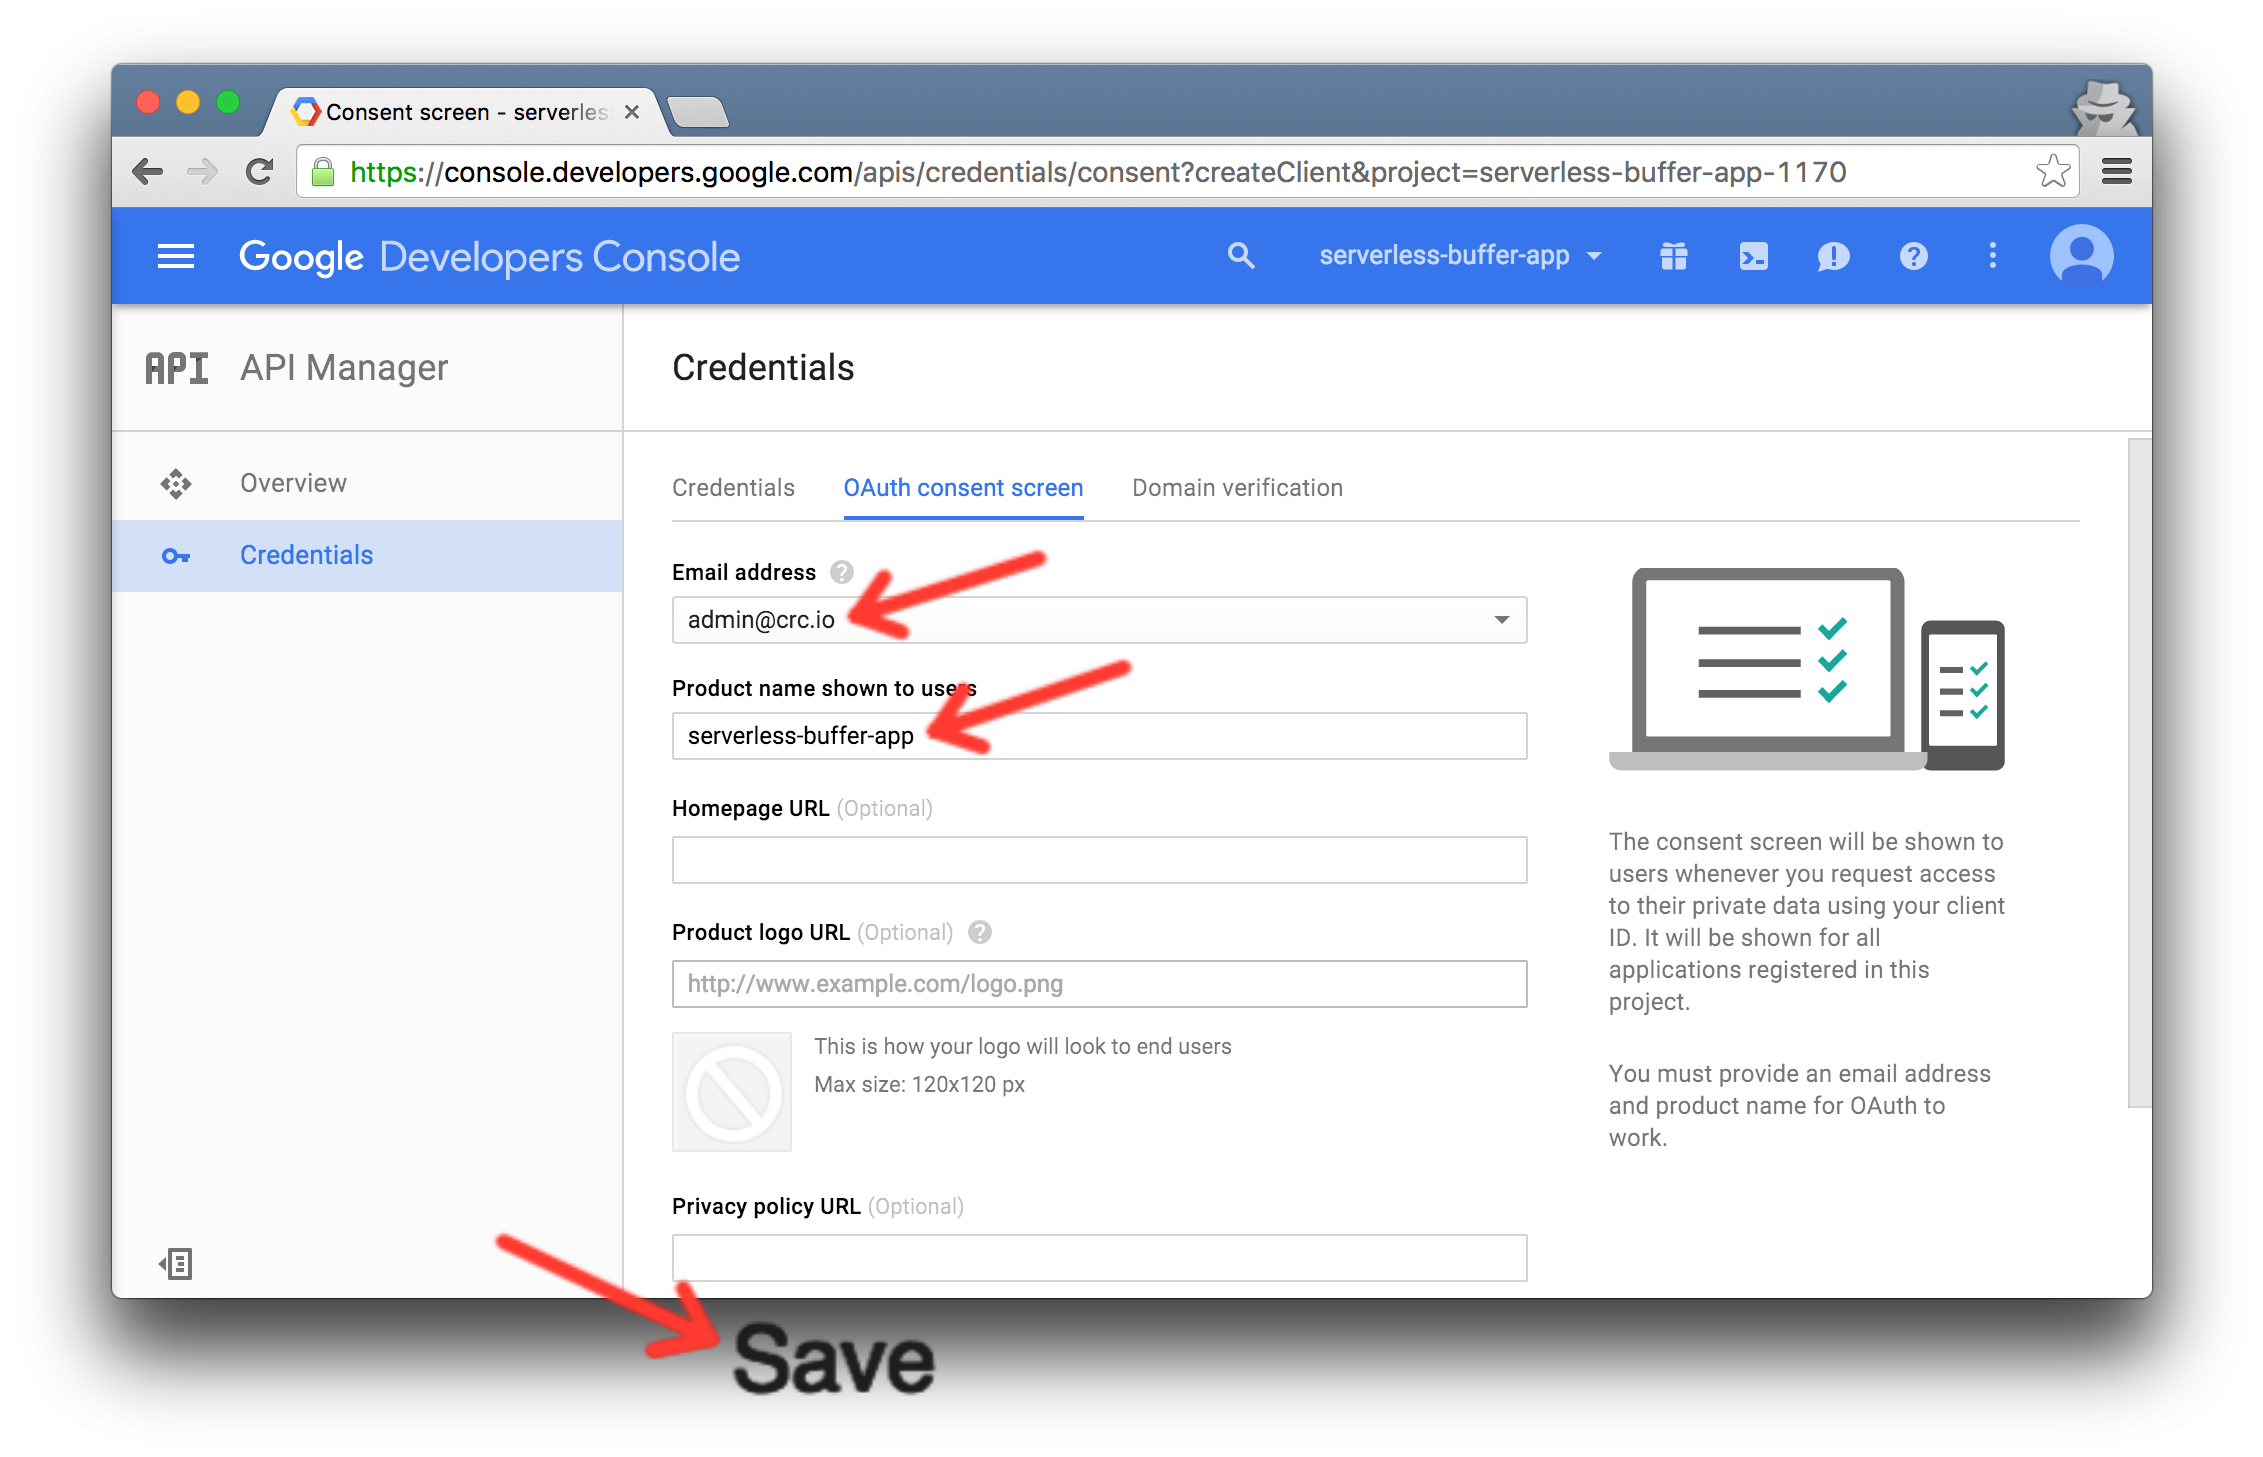 Google OAuth email address and product name